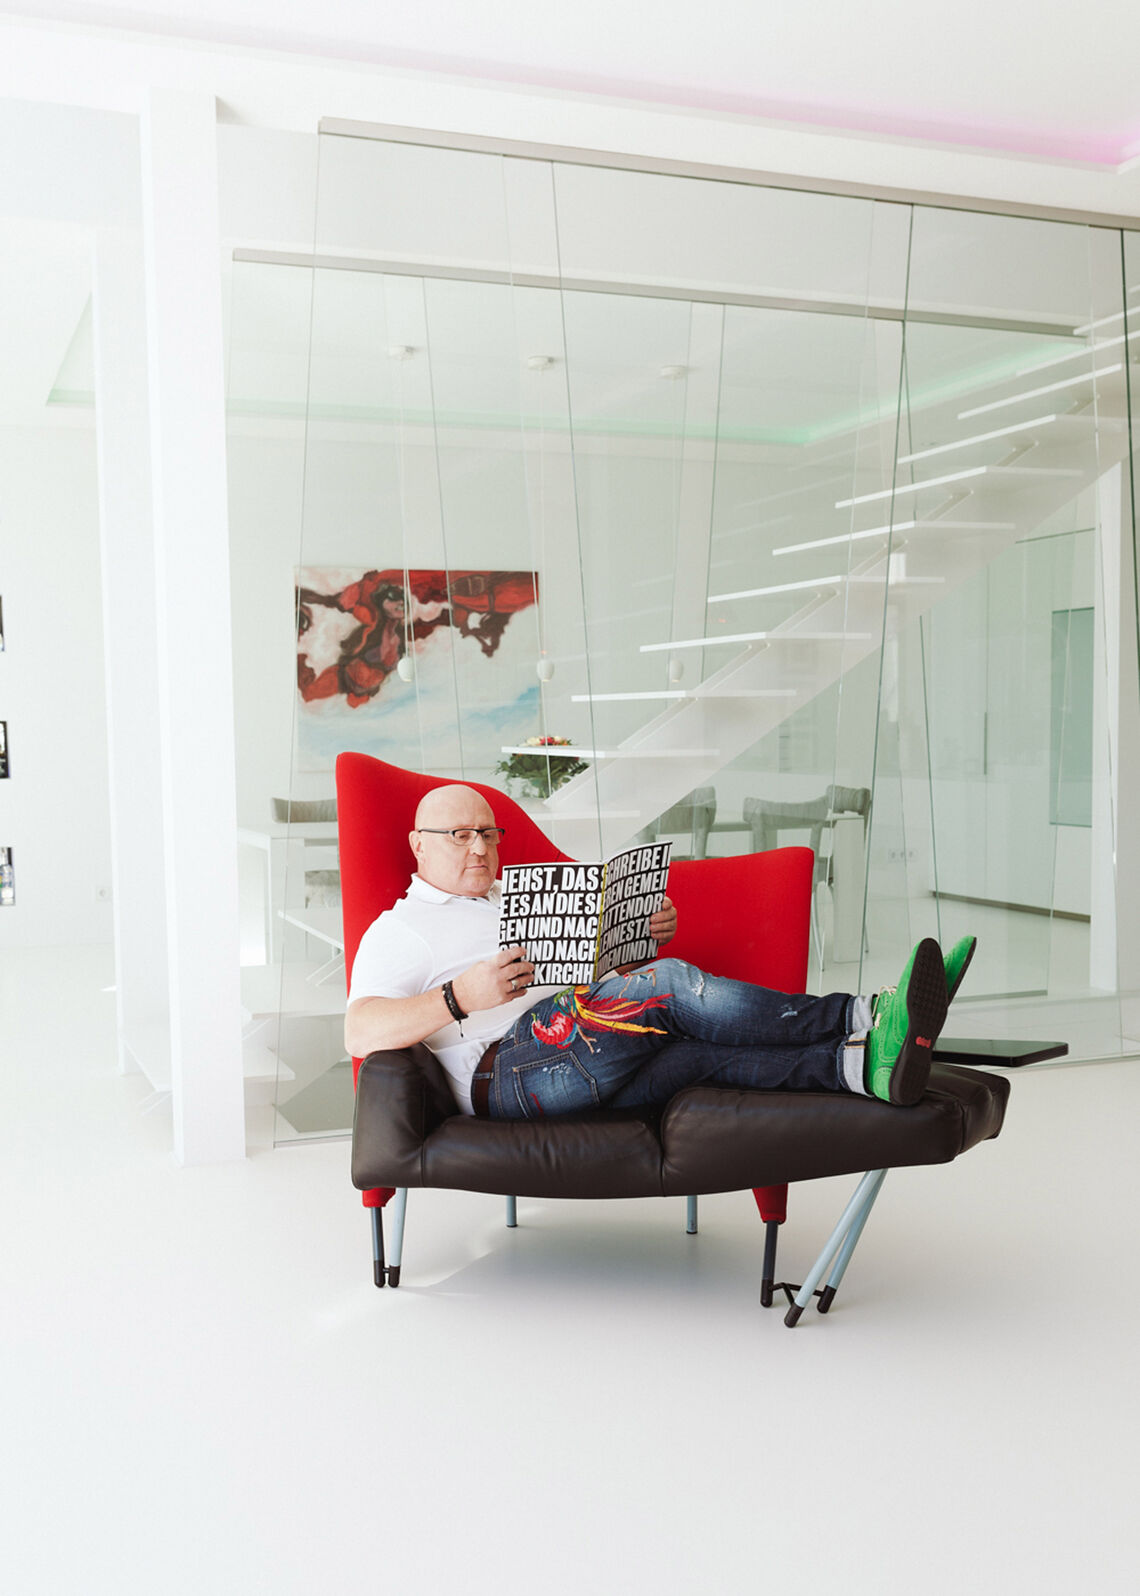 Bald man sitting on red-black armchair reading a magazine